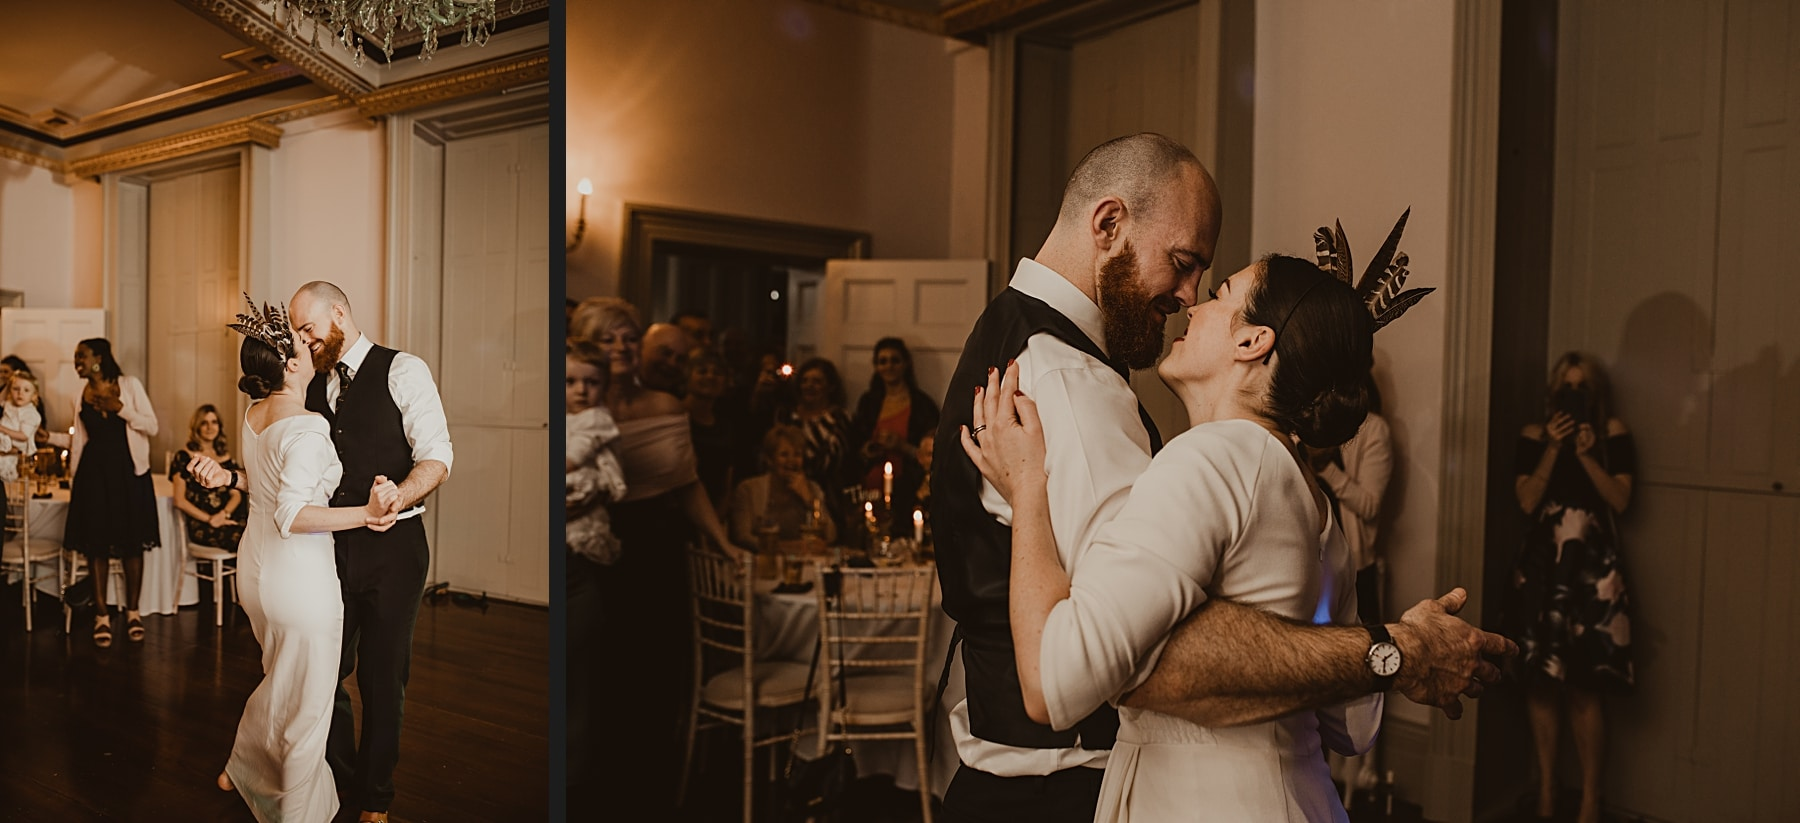 First Dance- Alternative wedding photography